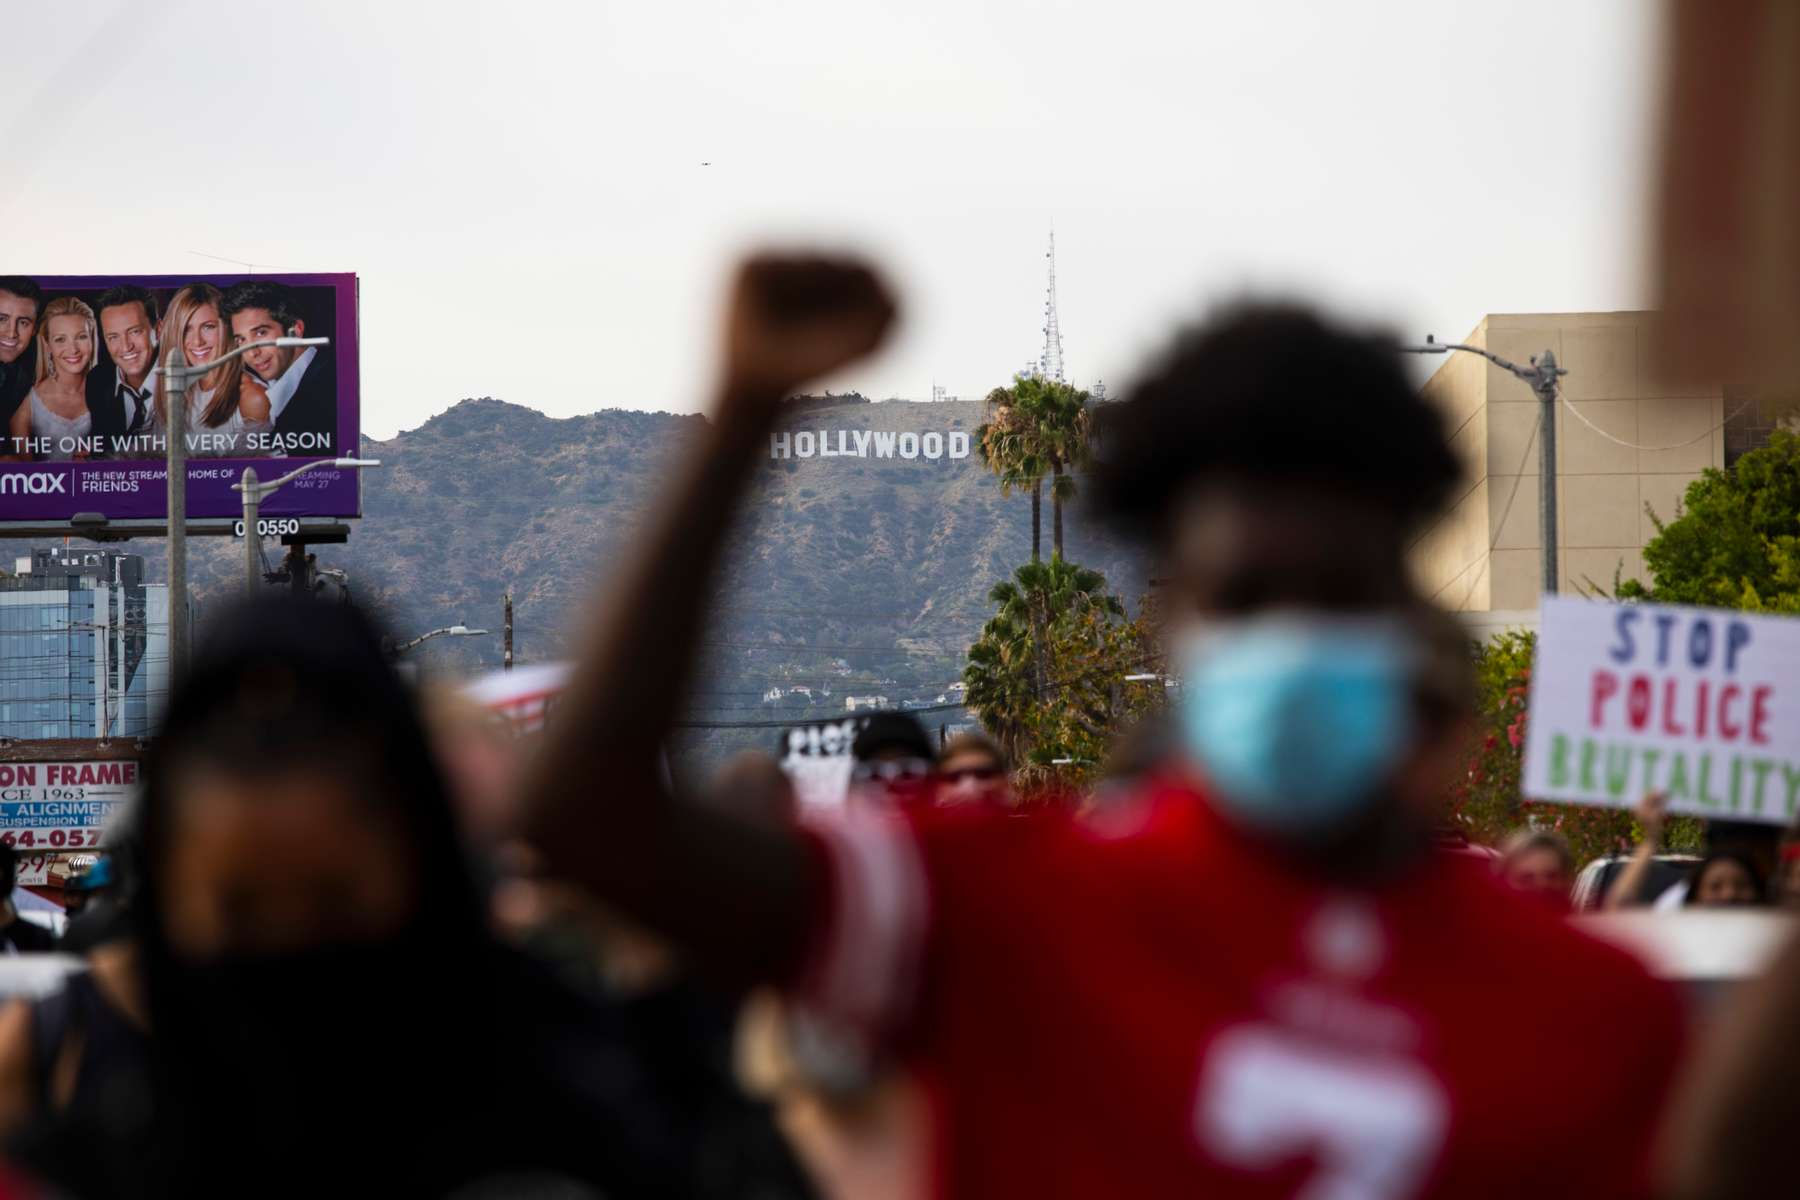 Protesters march peacefully during a march over the death of George Floyd, an unarmed black man, who died after a police officer kneeled on his neck for several minutes, in the Hollywood neighborhood on June 1, 2020, in Los Angeles, California.